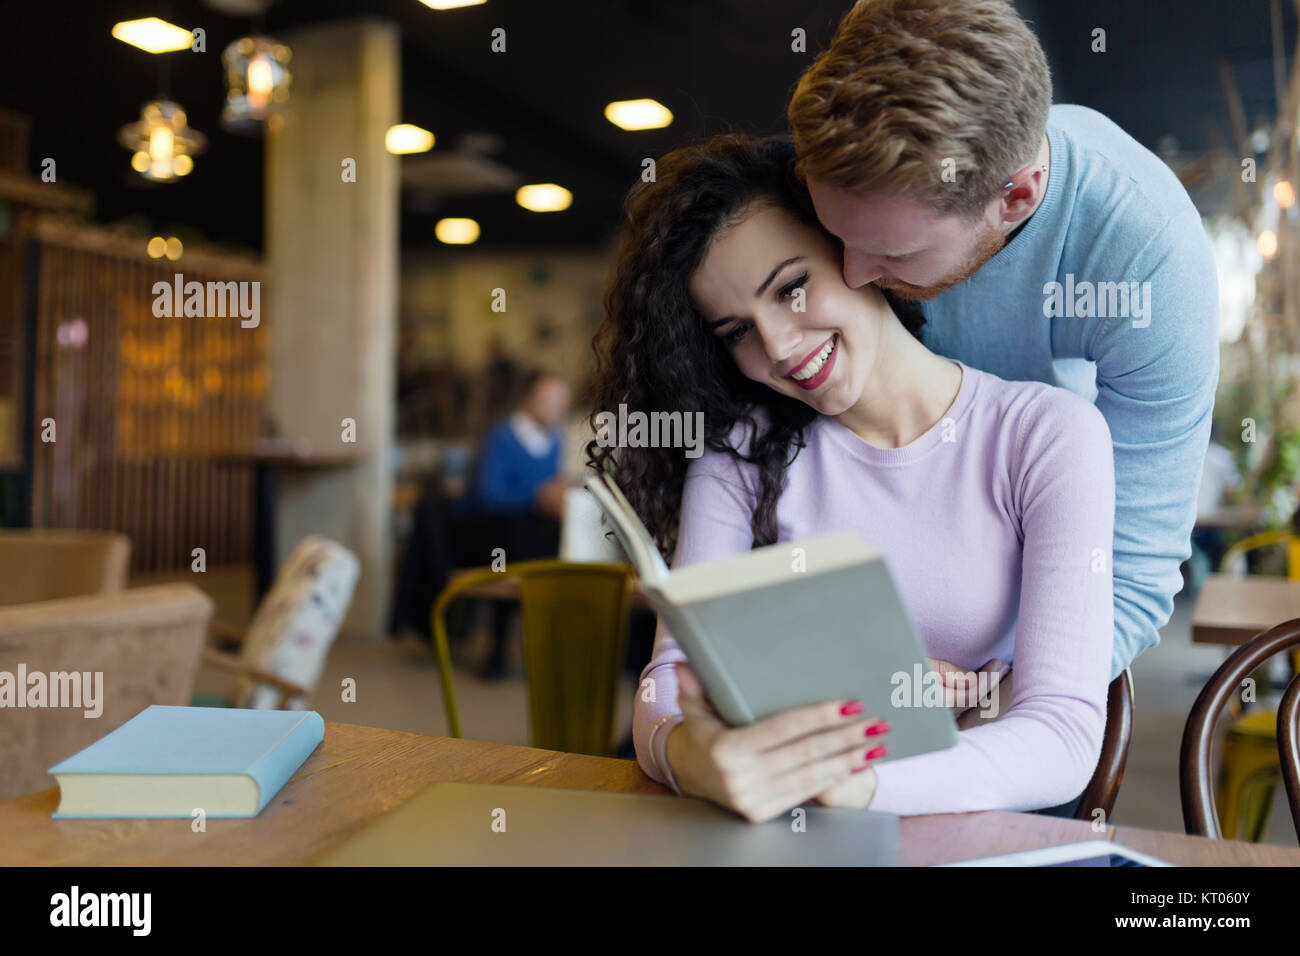 Happy young couple having fun in coffee shop - Stock Image